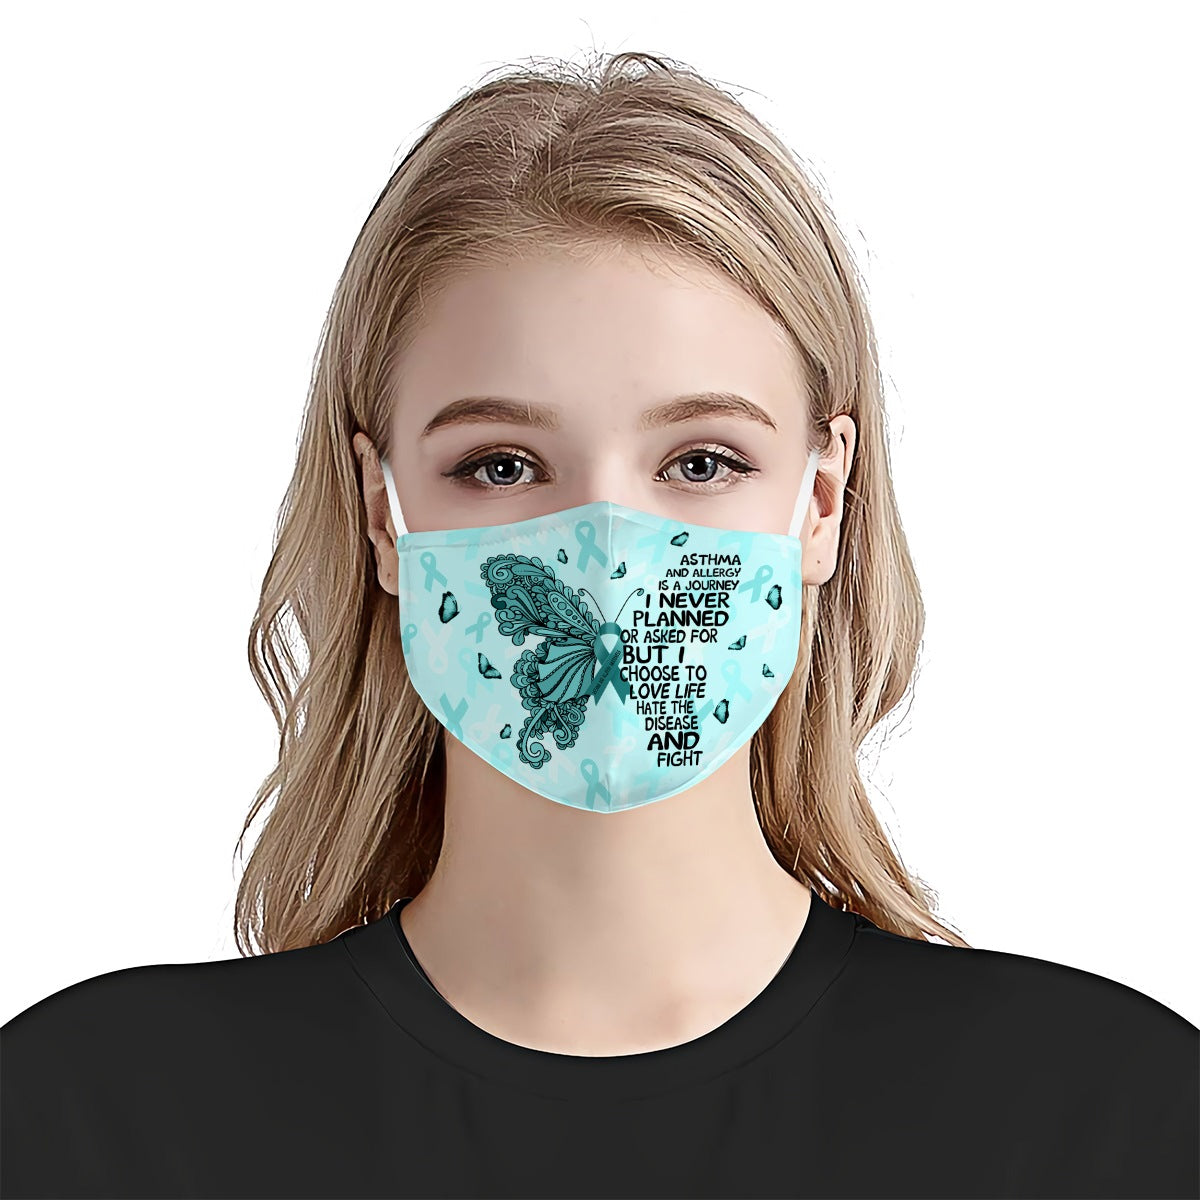 Asthma And Allergy Awareness Butterfly Journey EZ01 0705 Face Mask - Hyperfavor